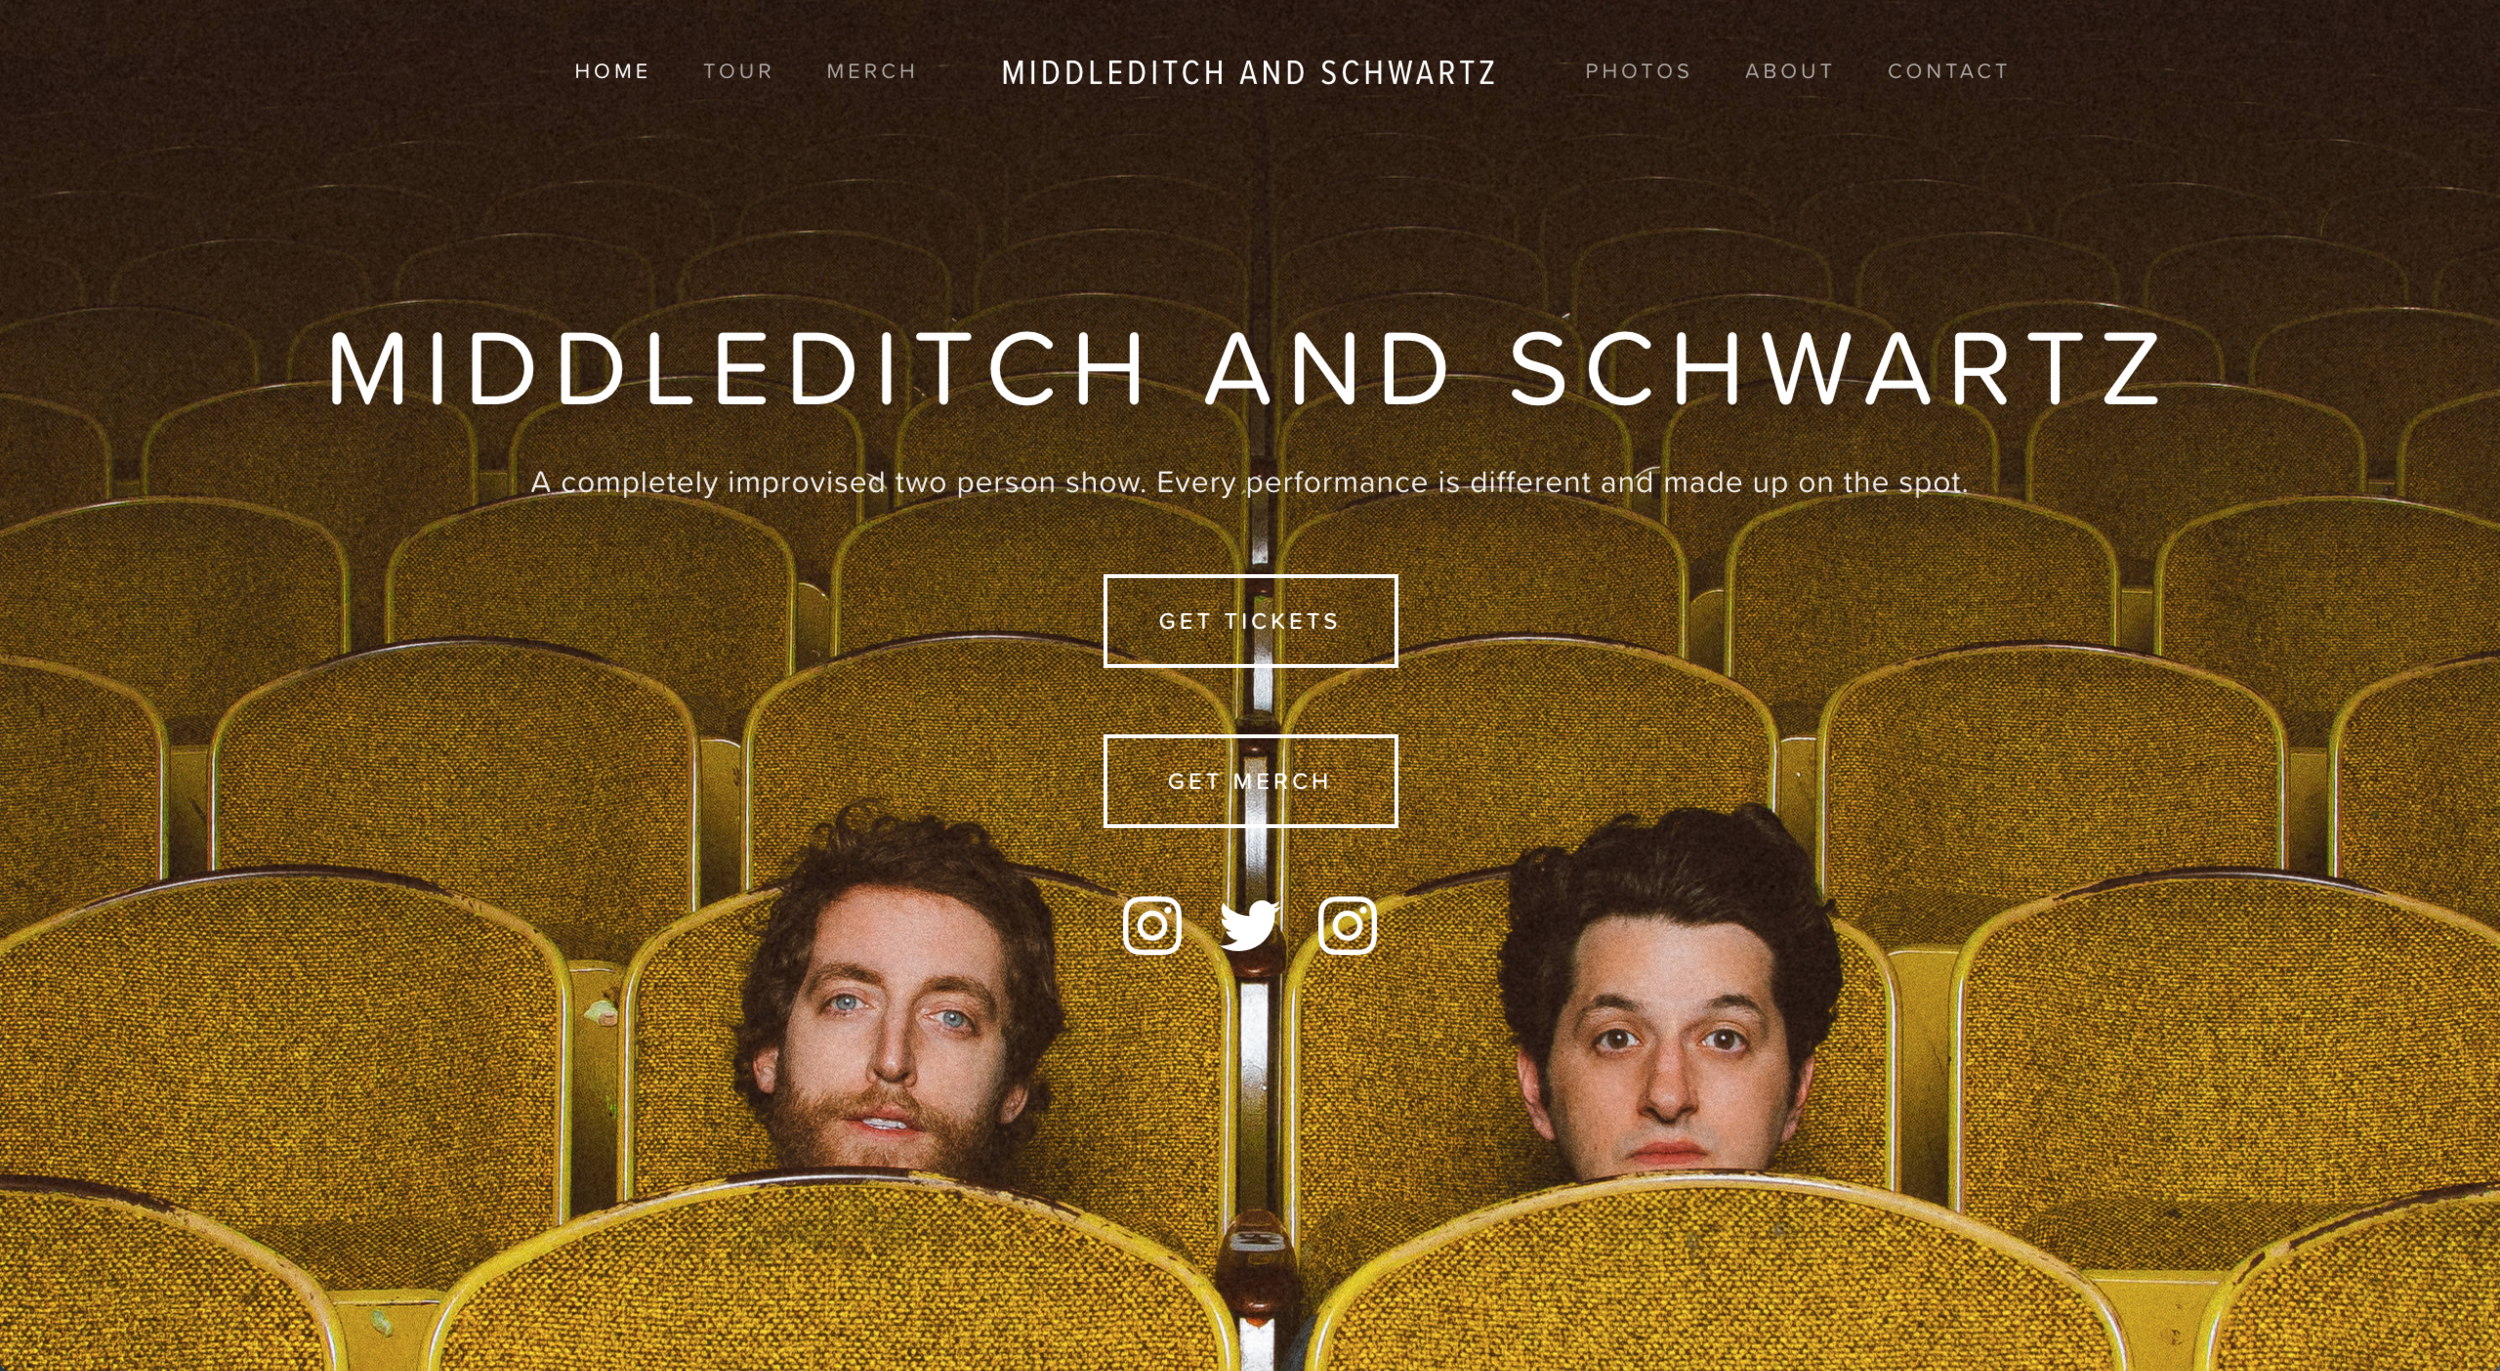 MIDDLEDITCH AND SCHWARTZ -    MIDDLEDITCHANDSCHWARTZ.COM